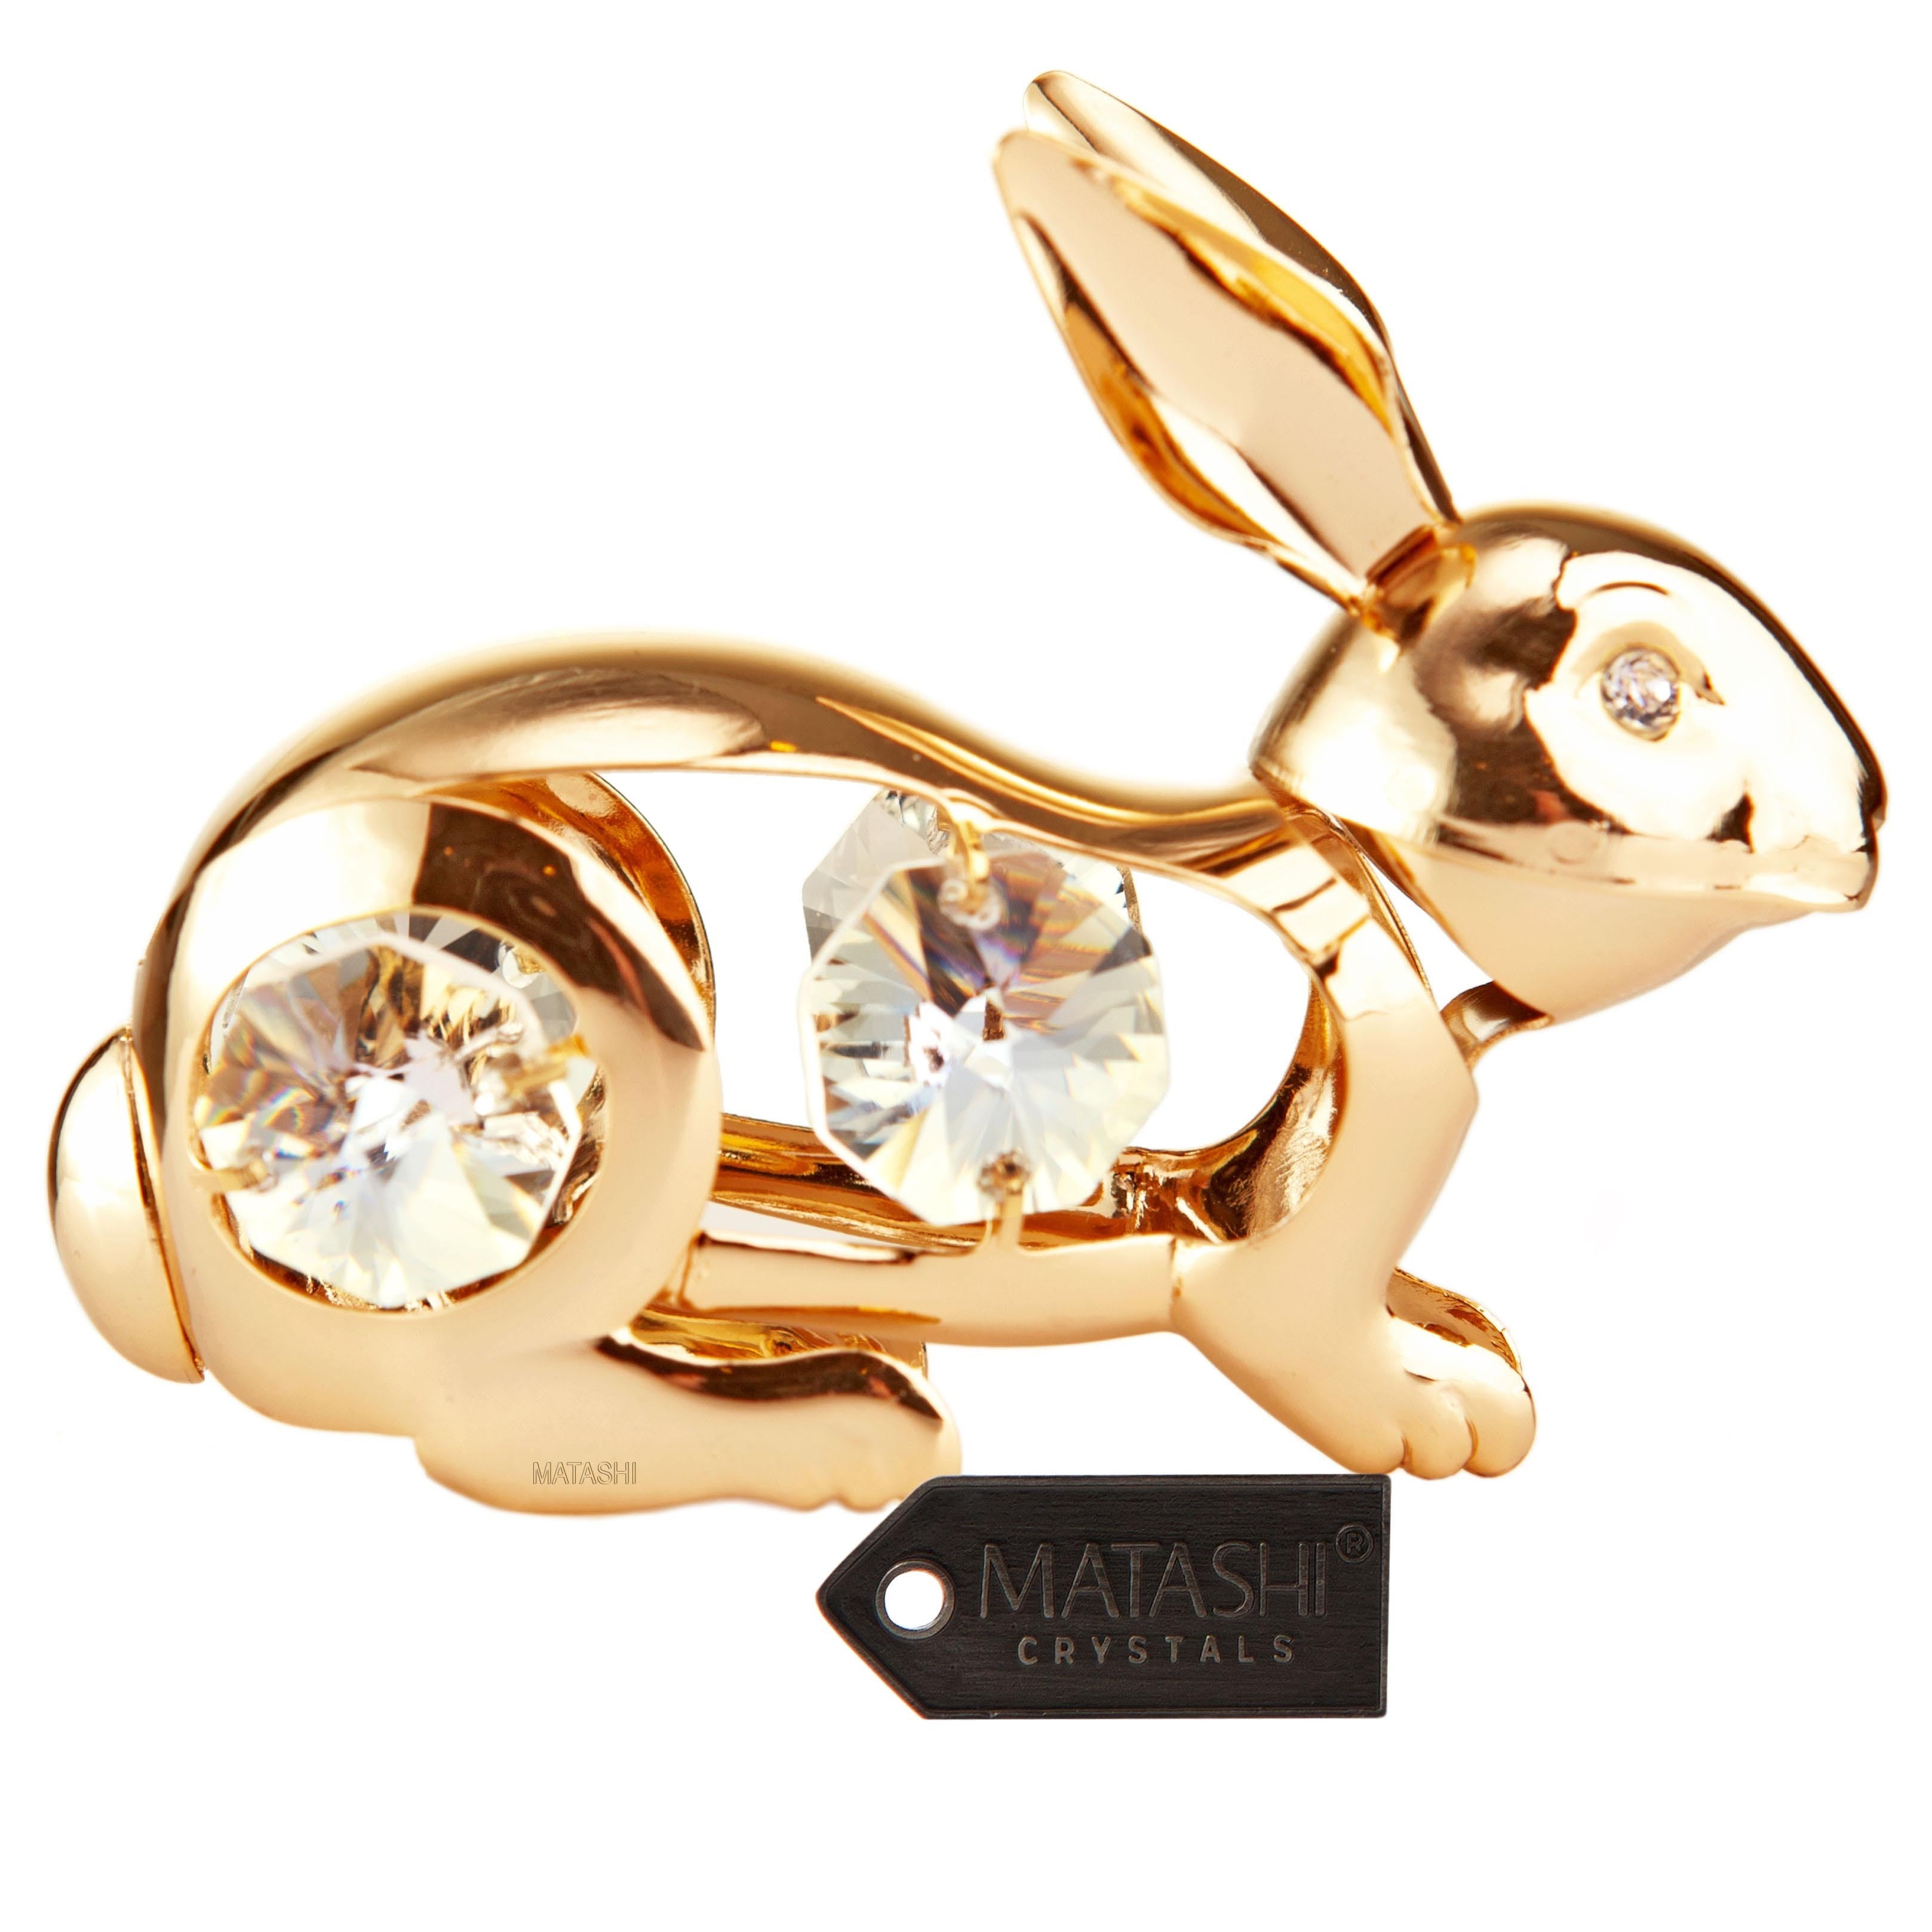 24k Goldplated Ornament Made with Genuine Matashi Crystals (Rabbit Ornament)